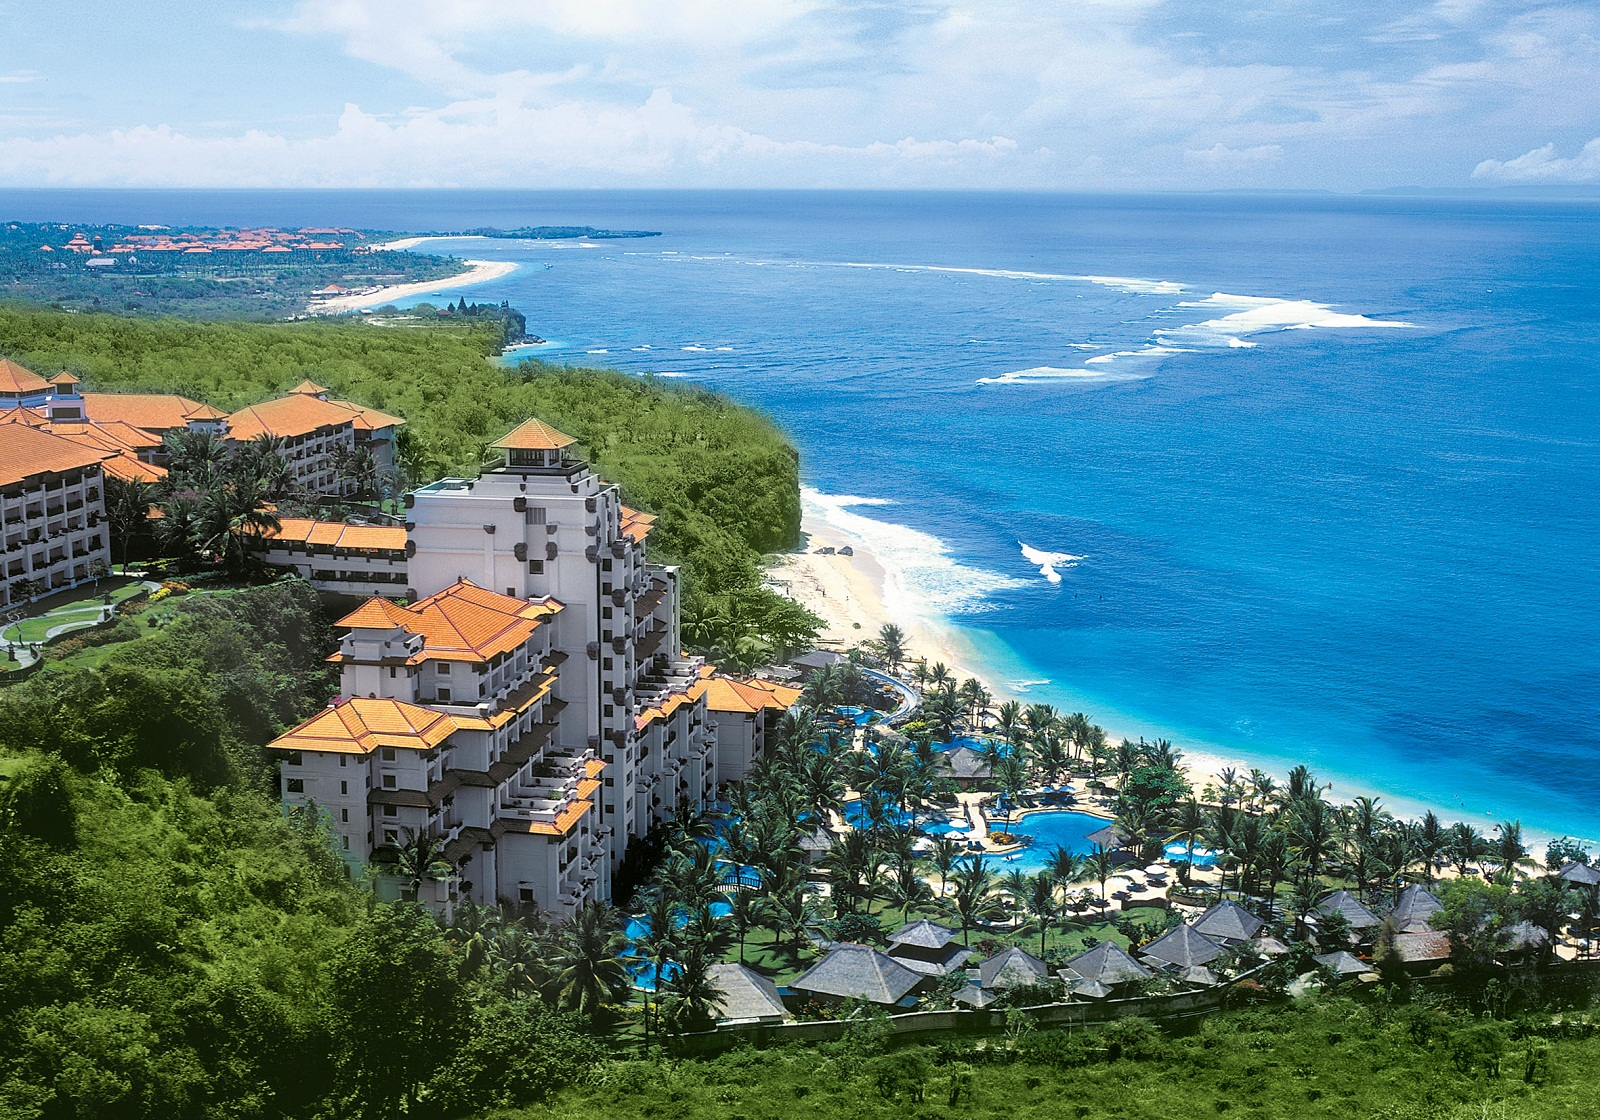 Bali indonesia resort and beach view from top for Indonesia resorts bali